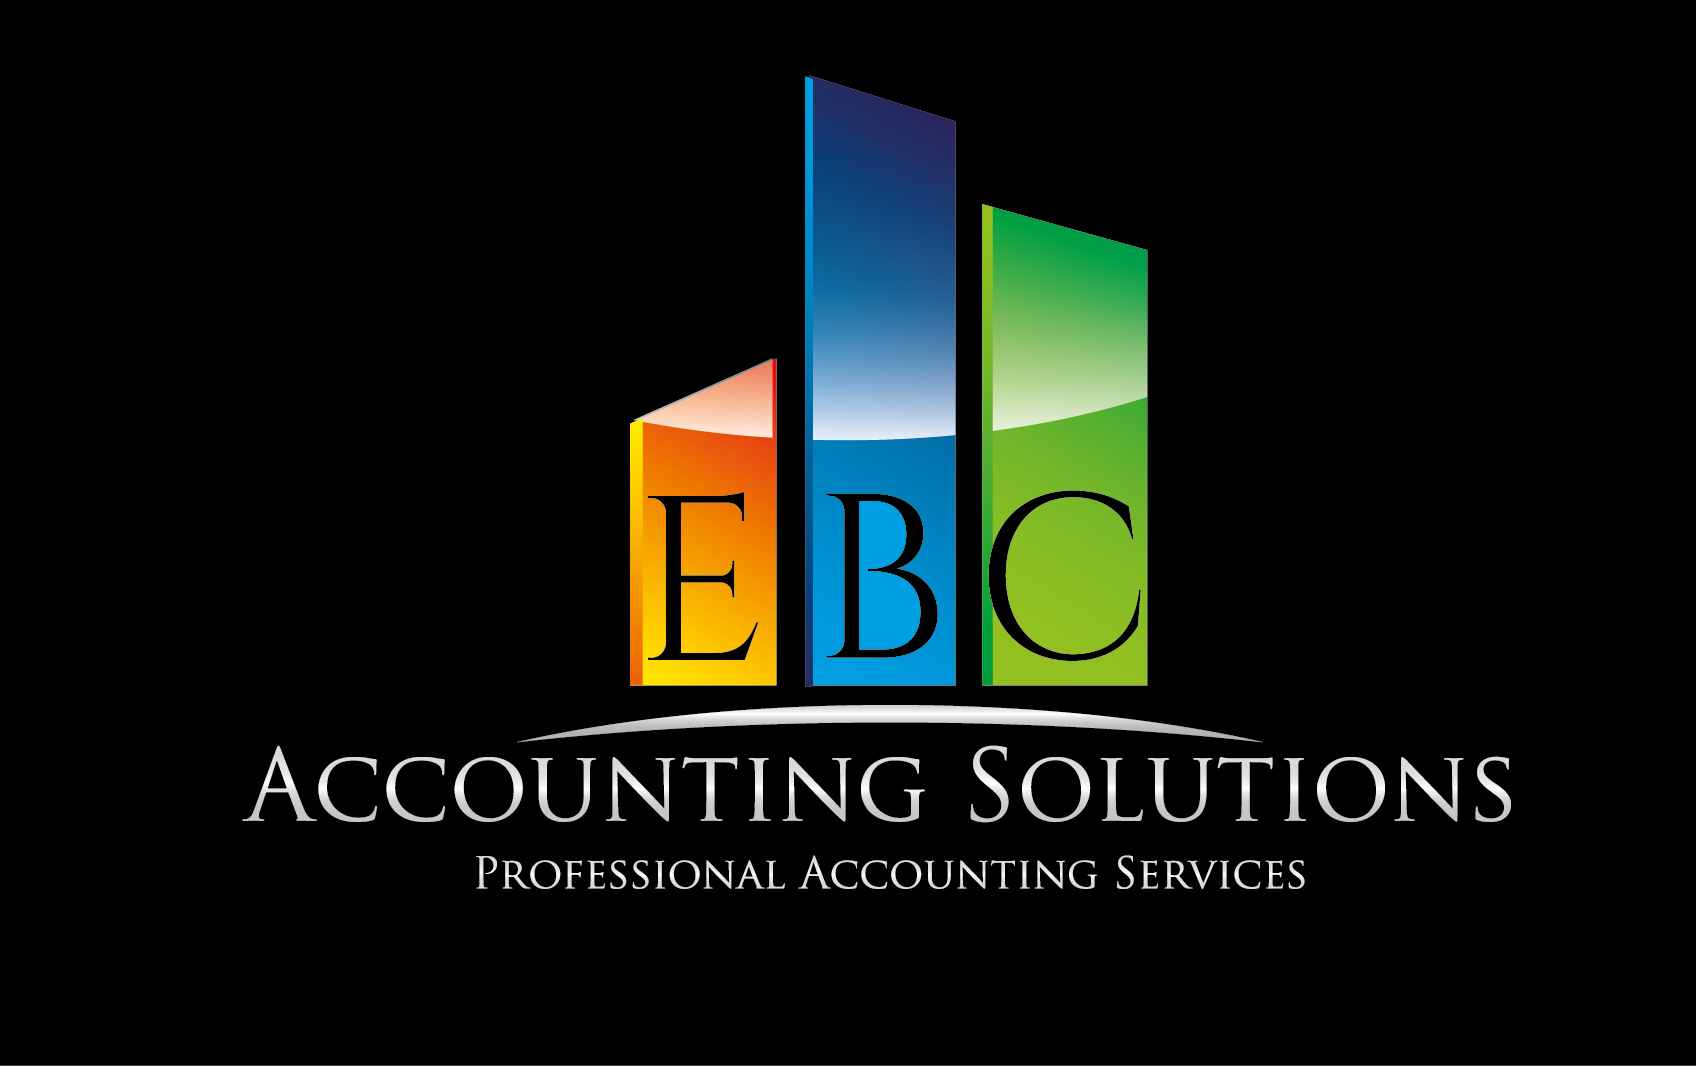 Logo Design by VENTSISLAV KOVACHEV - Entry No. 13 in the Logo Design Contest New Logo Design for EBC Accounting Solutions.